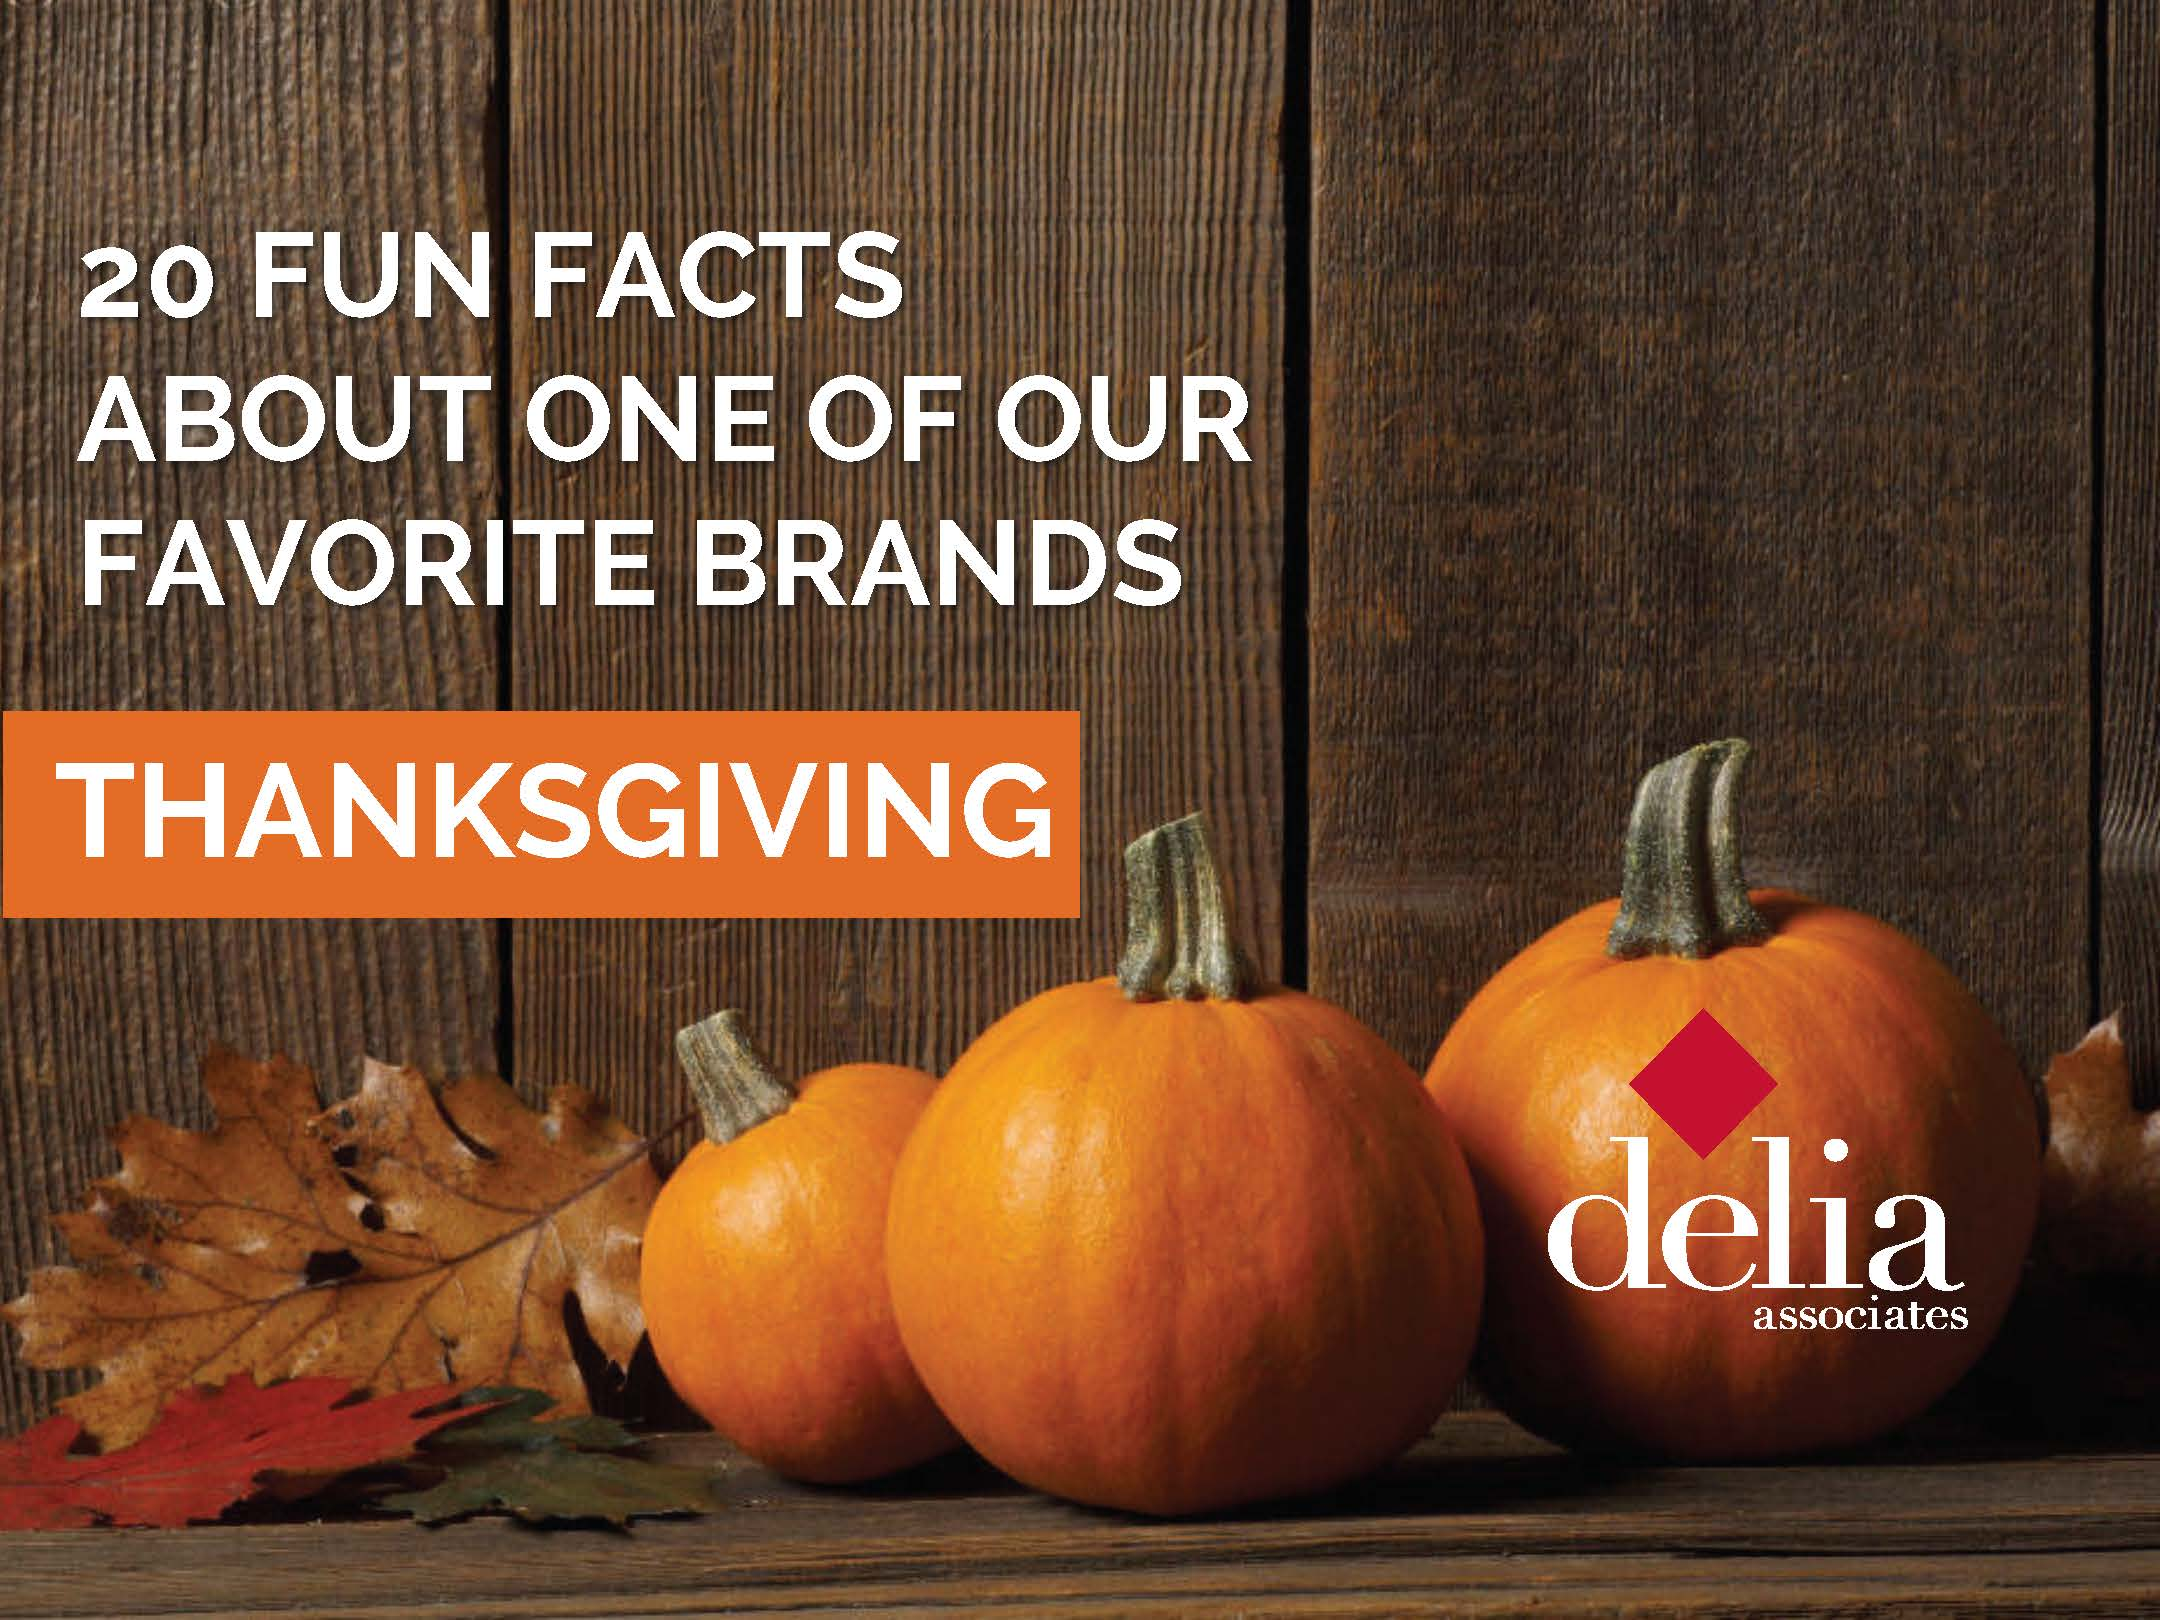 Delia Thanksgiving Fun Facts